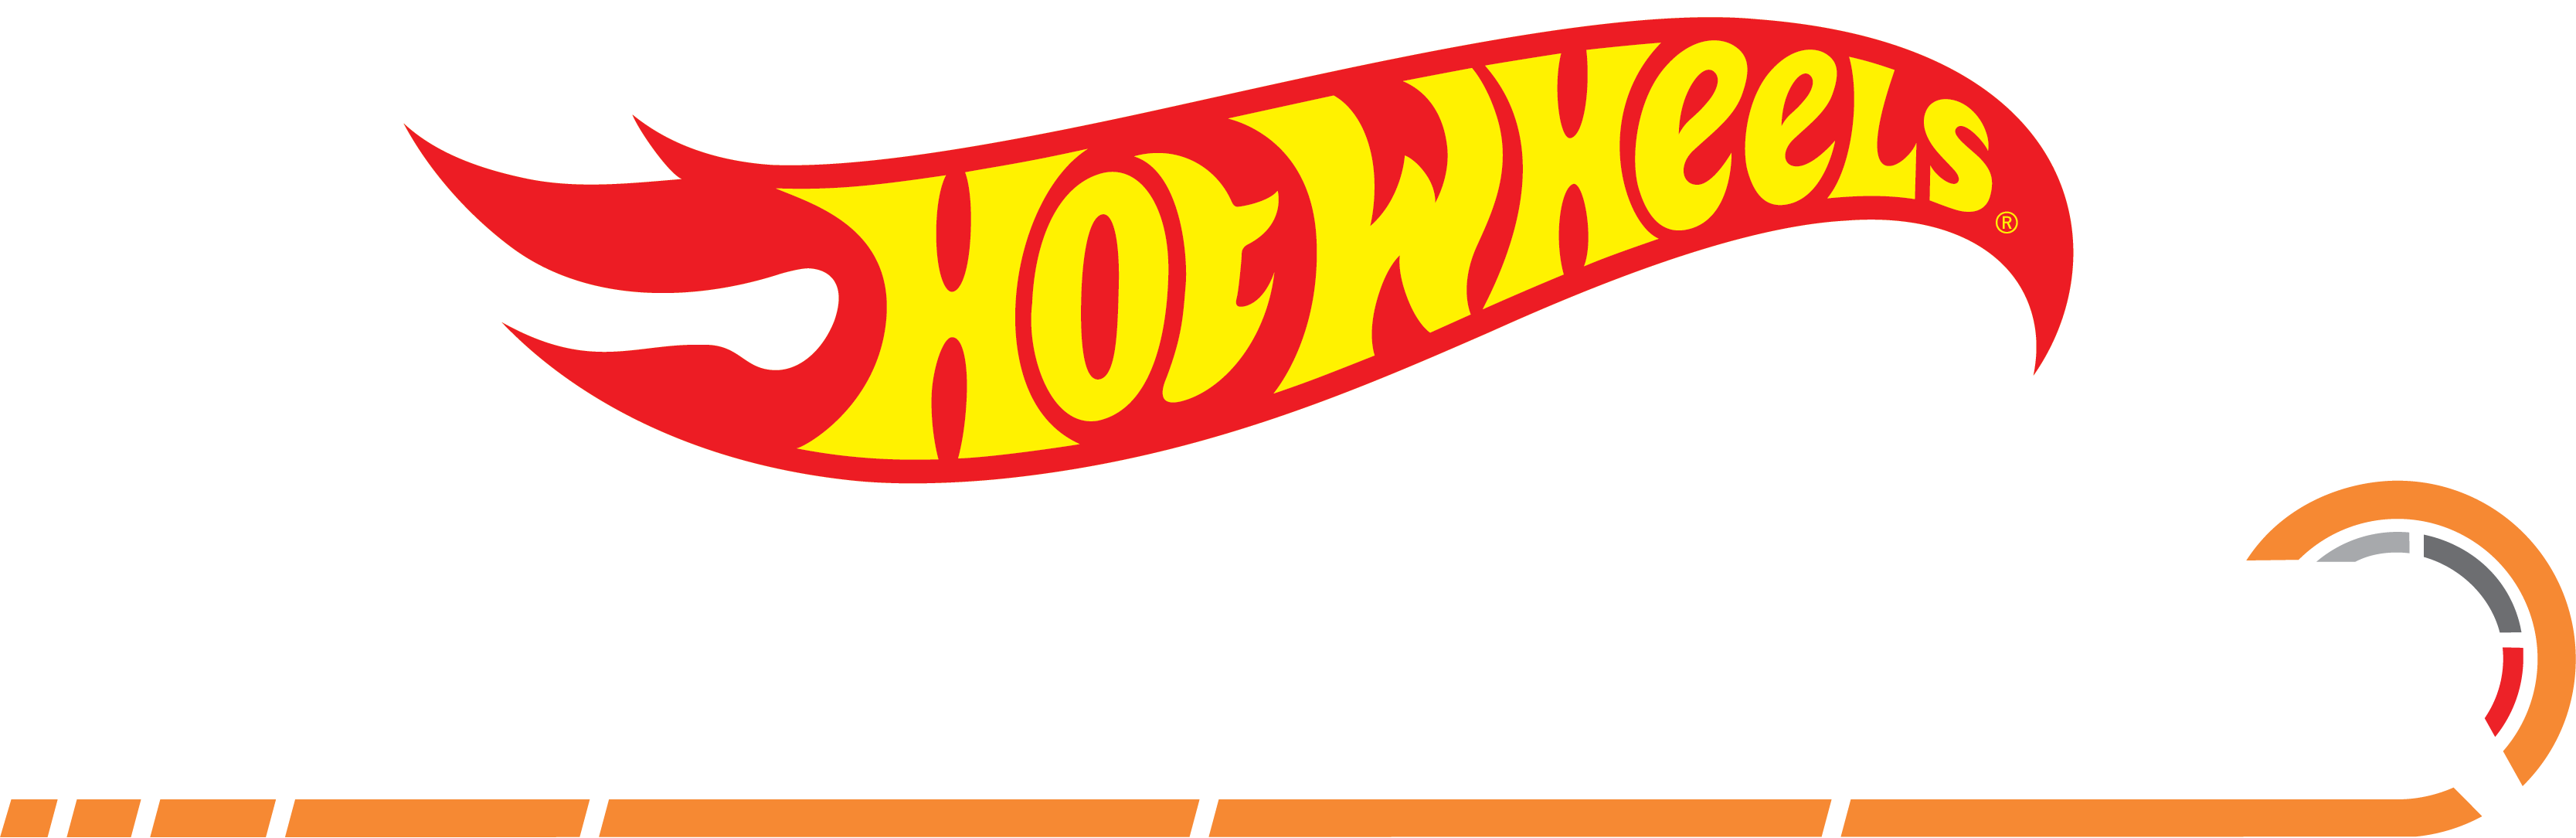 The Hot Wheels® logo above text 'Speedometry' represented with a rev meter